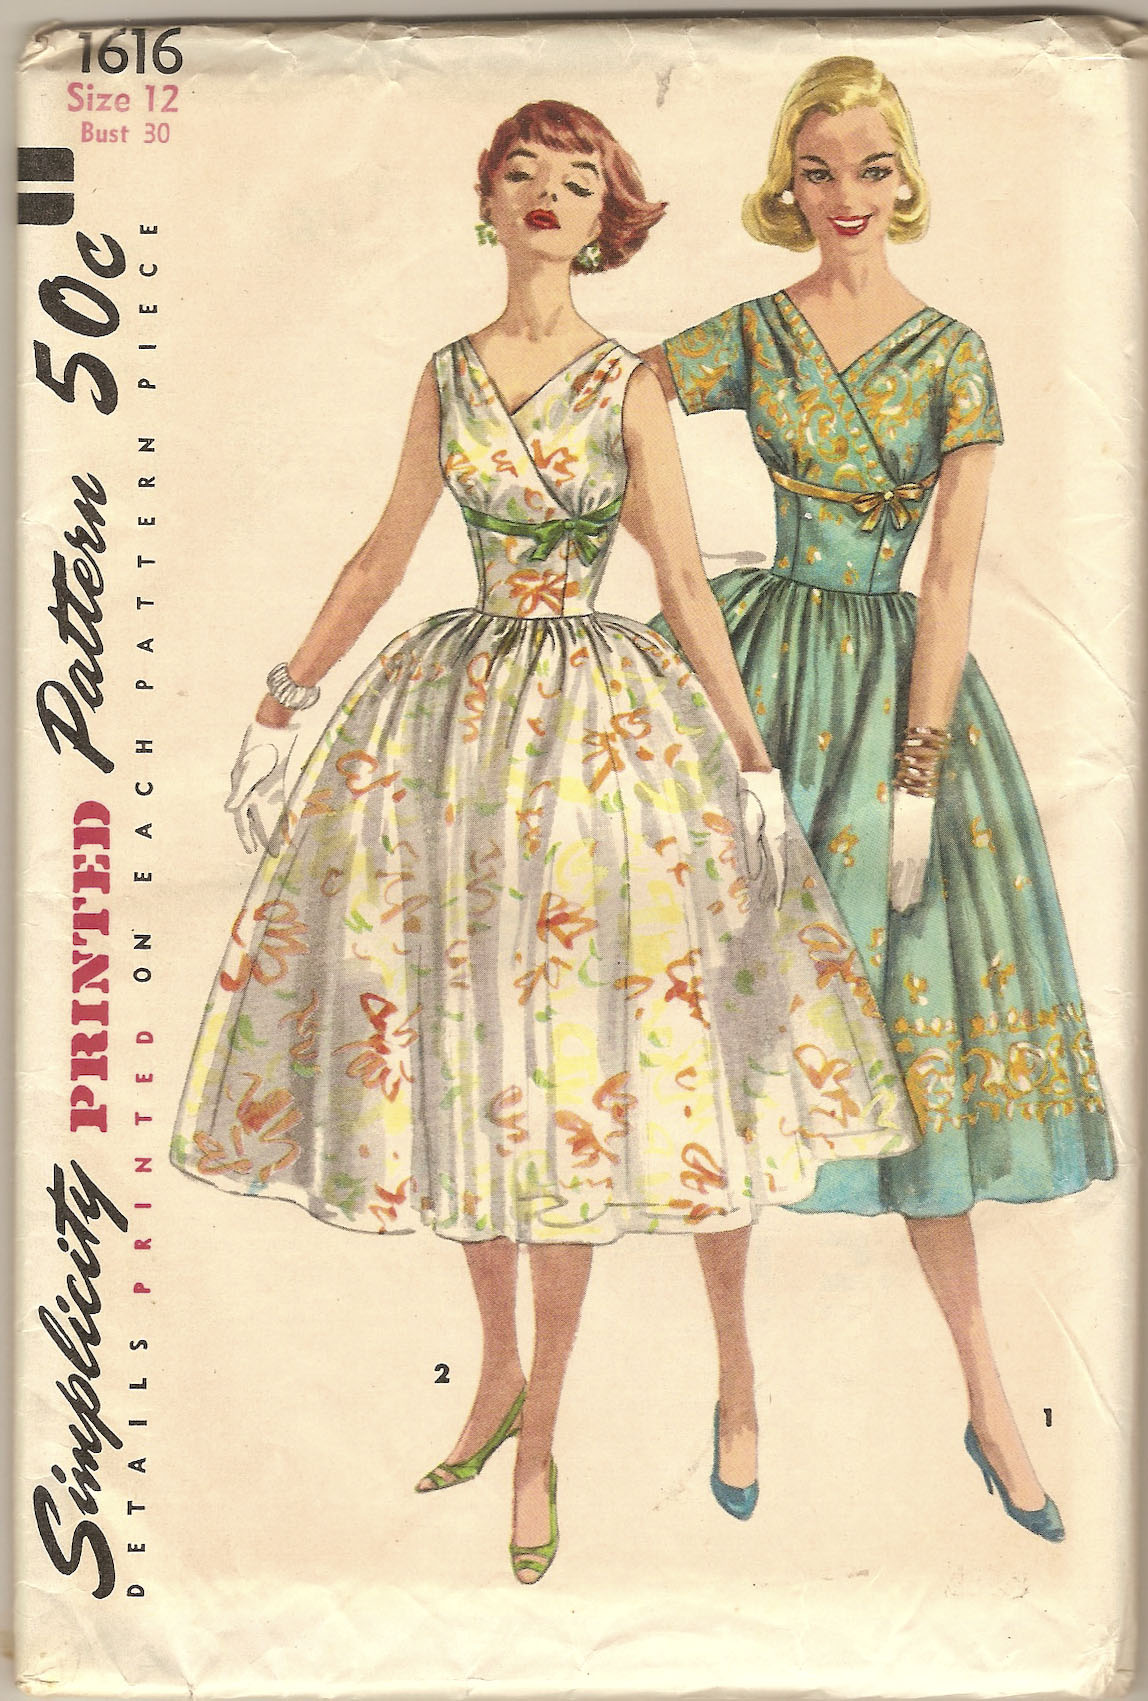 Vintage Clothing Patterns | Beauty Clothes